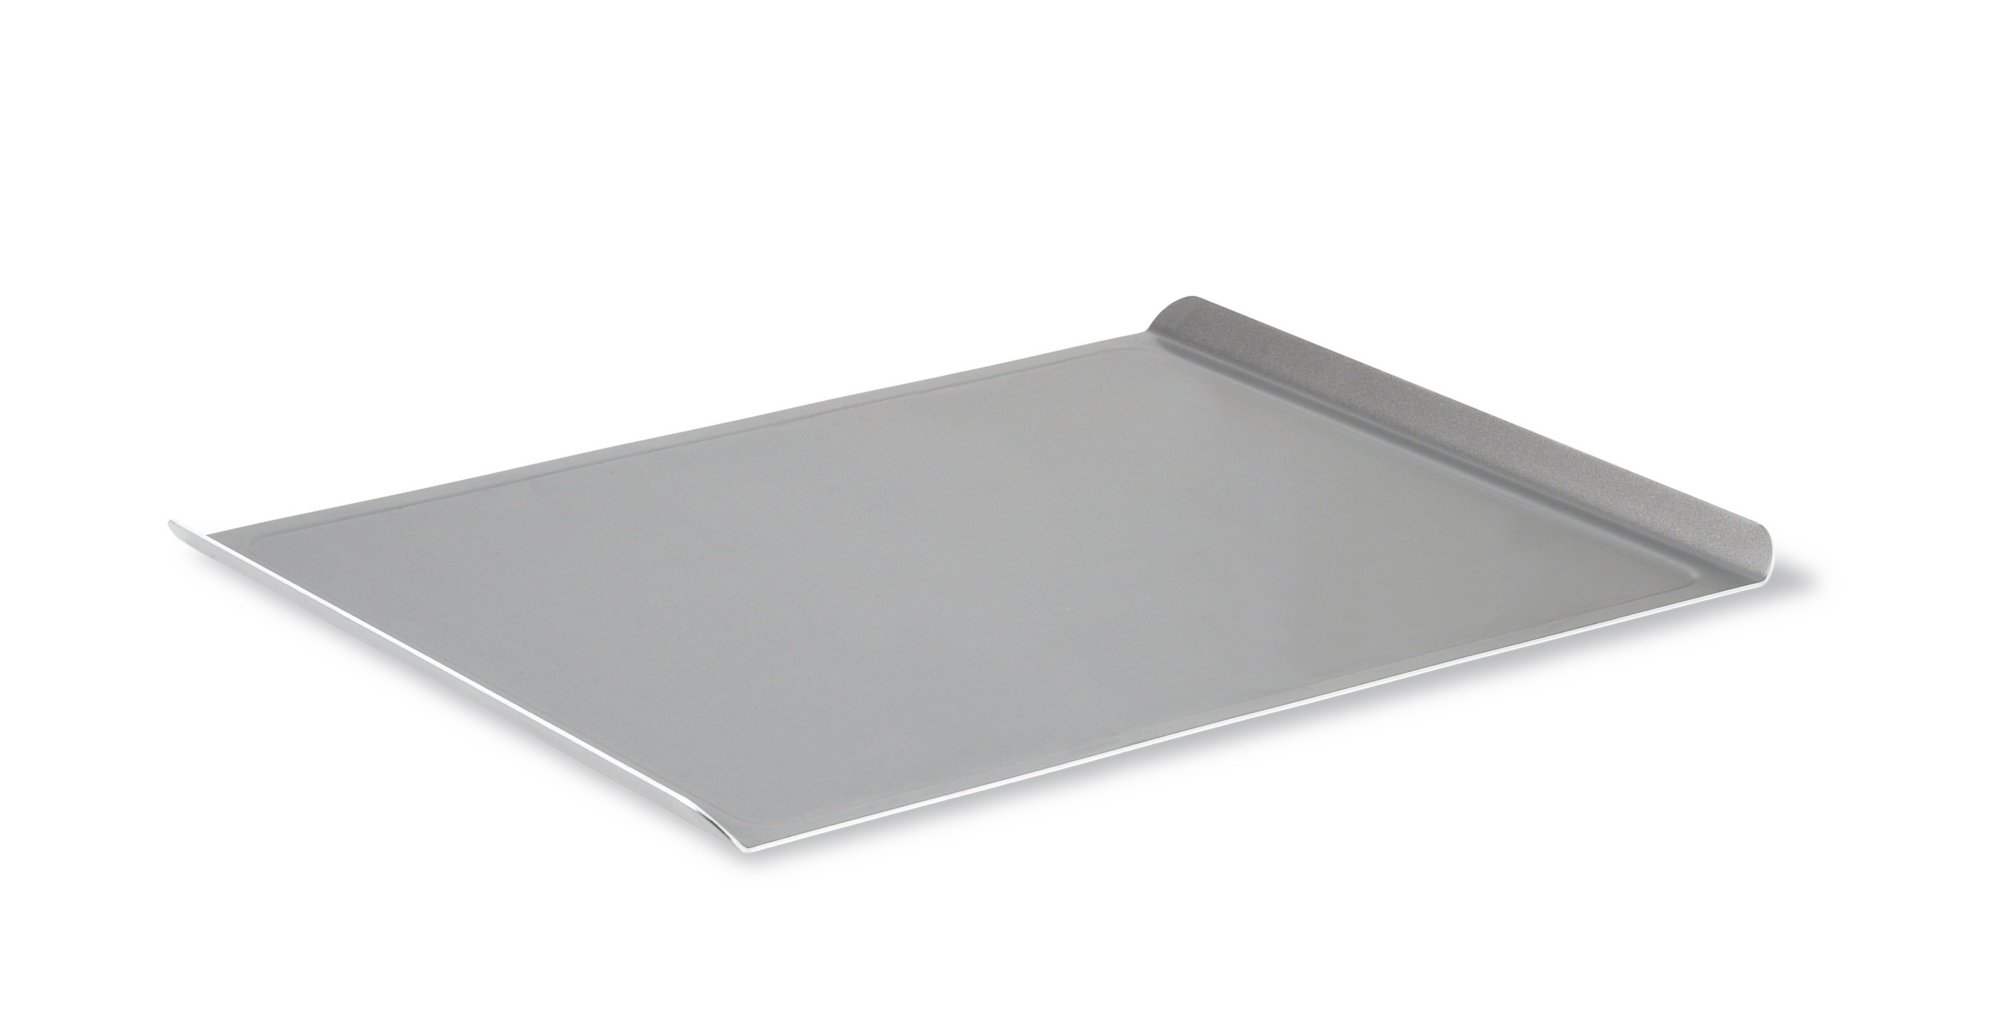 Calphalon Nonstick Bakeware 14-in. x 17-in. Cookie Sheet